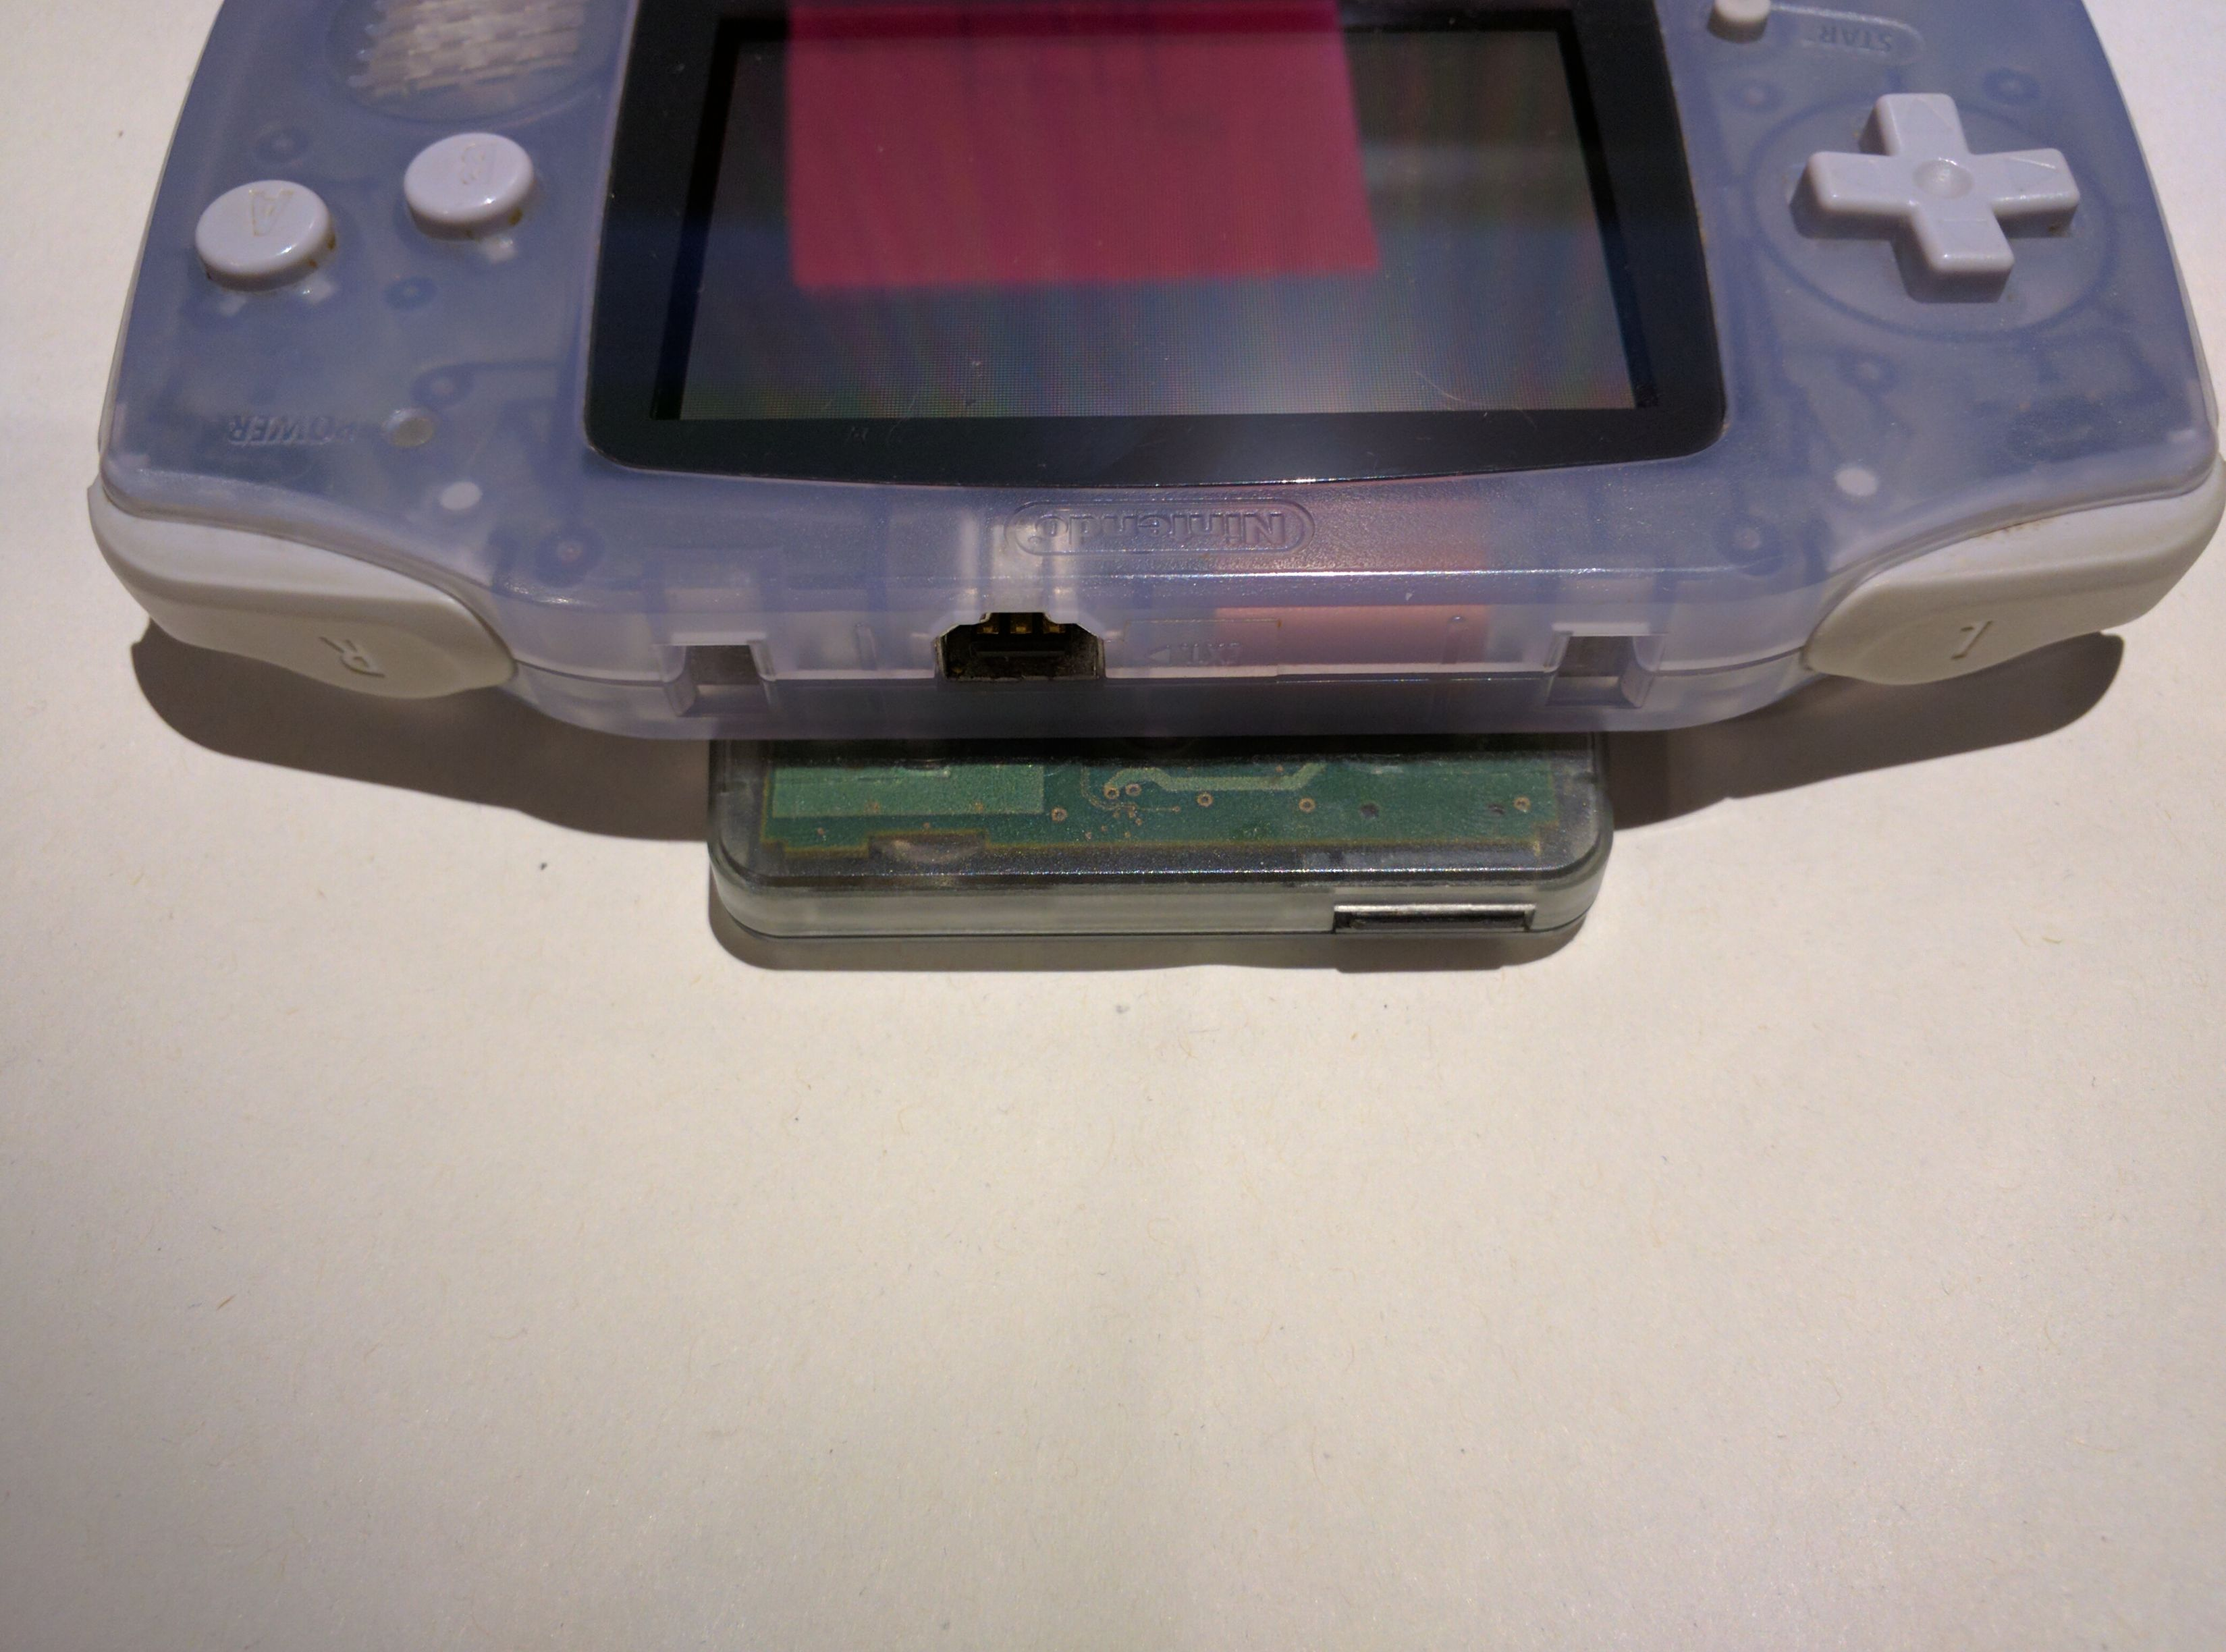 Game boy color everdrive - Attachthumb58619 Attachthumb58620 Attachthumb58621